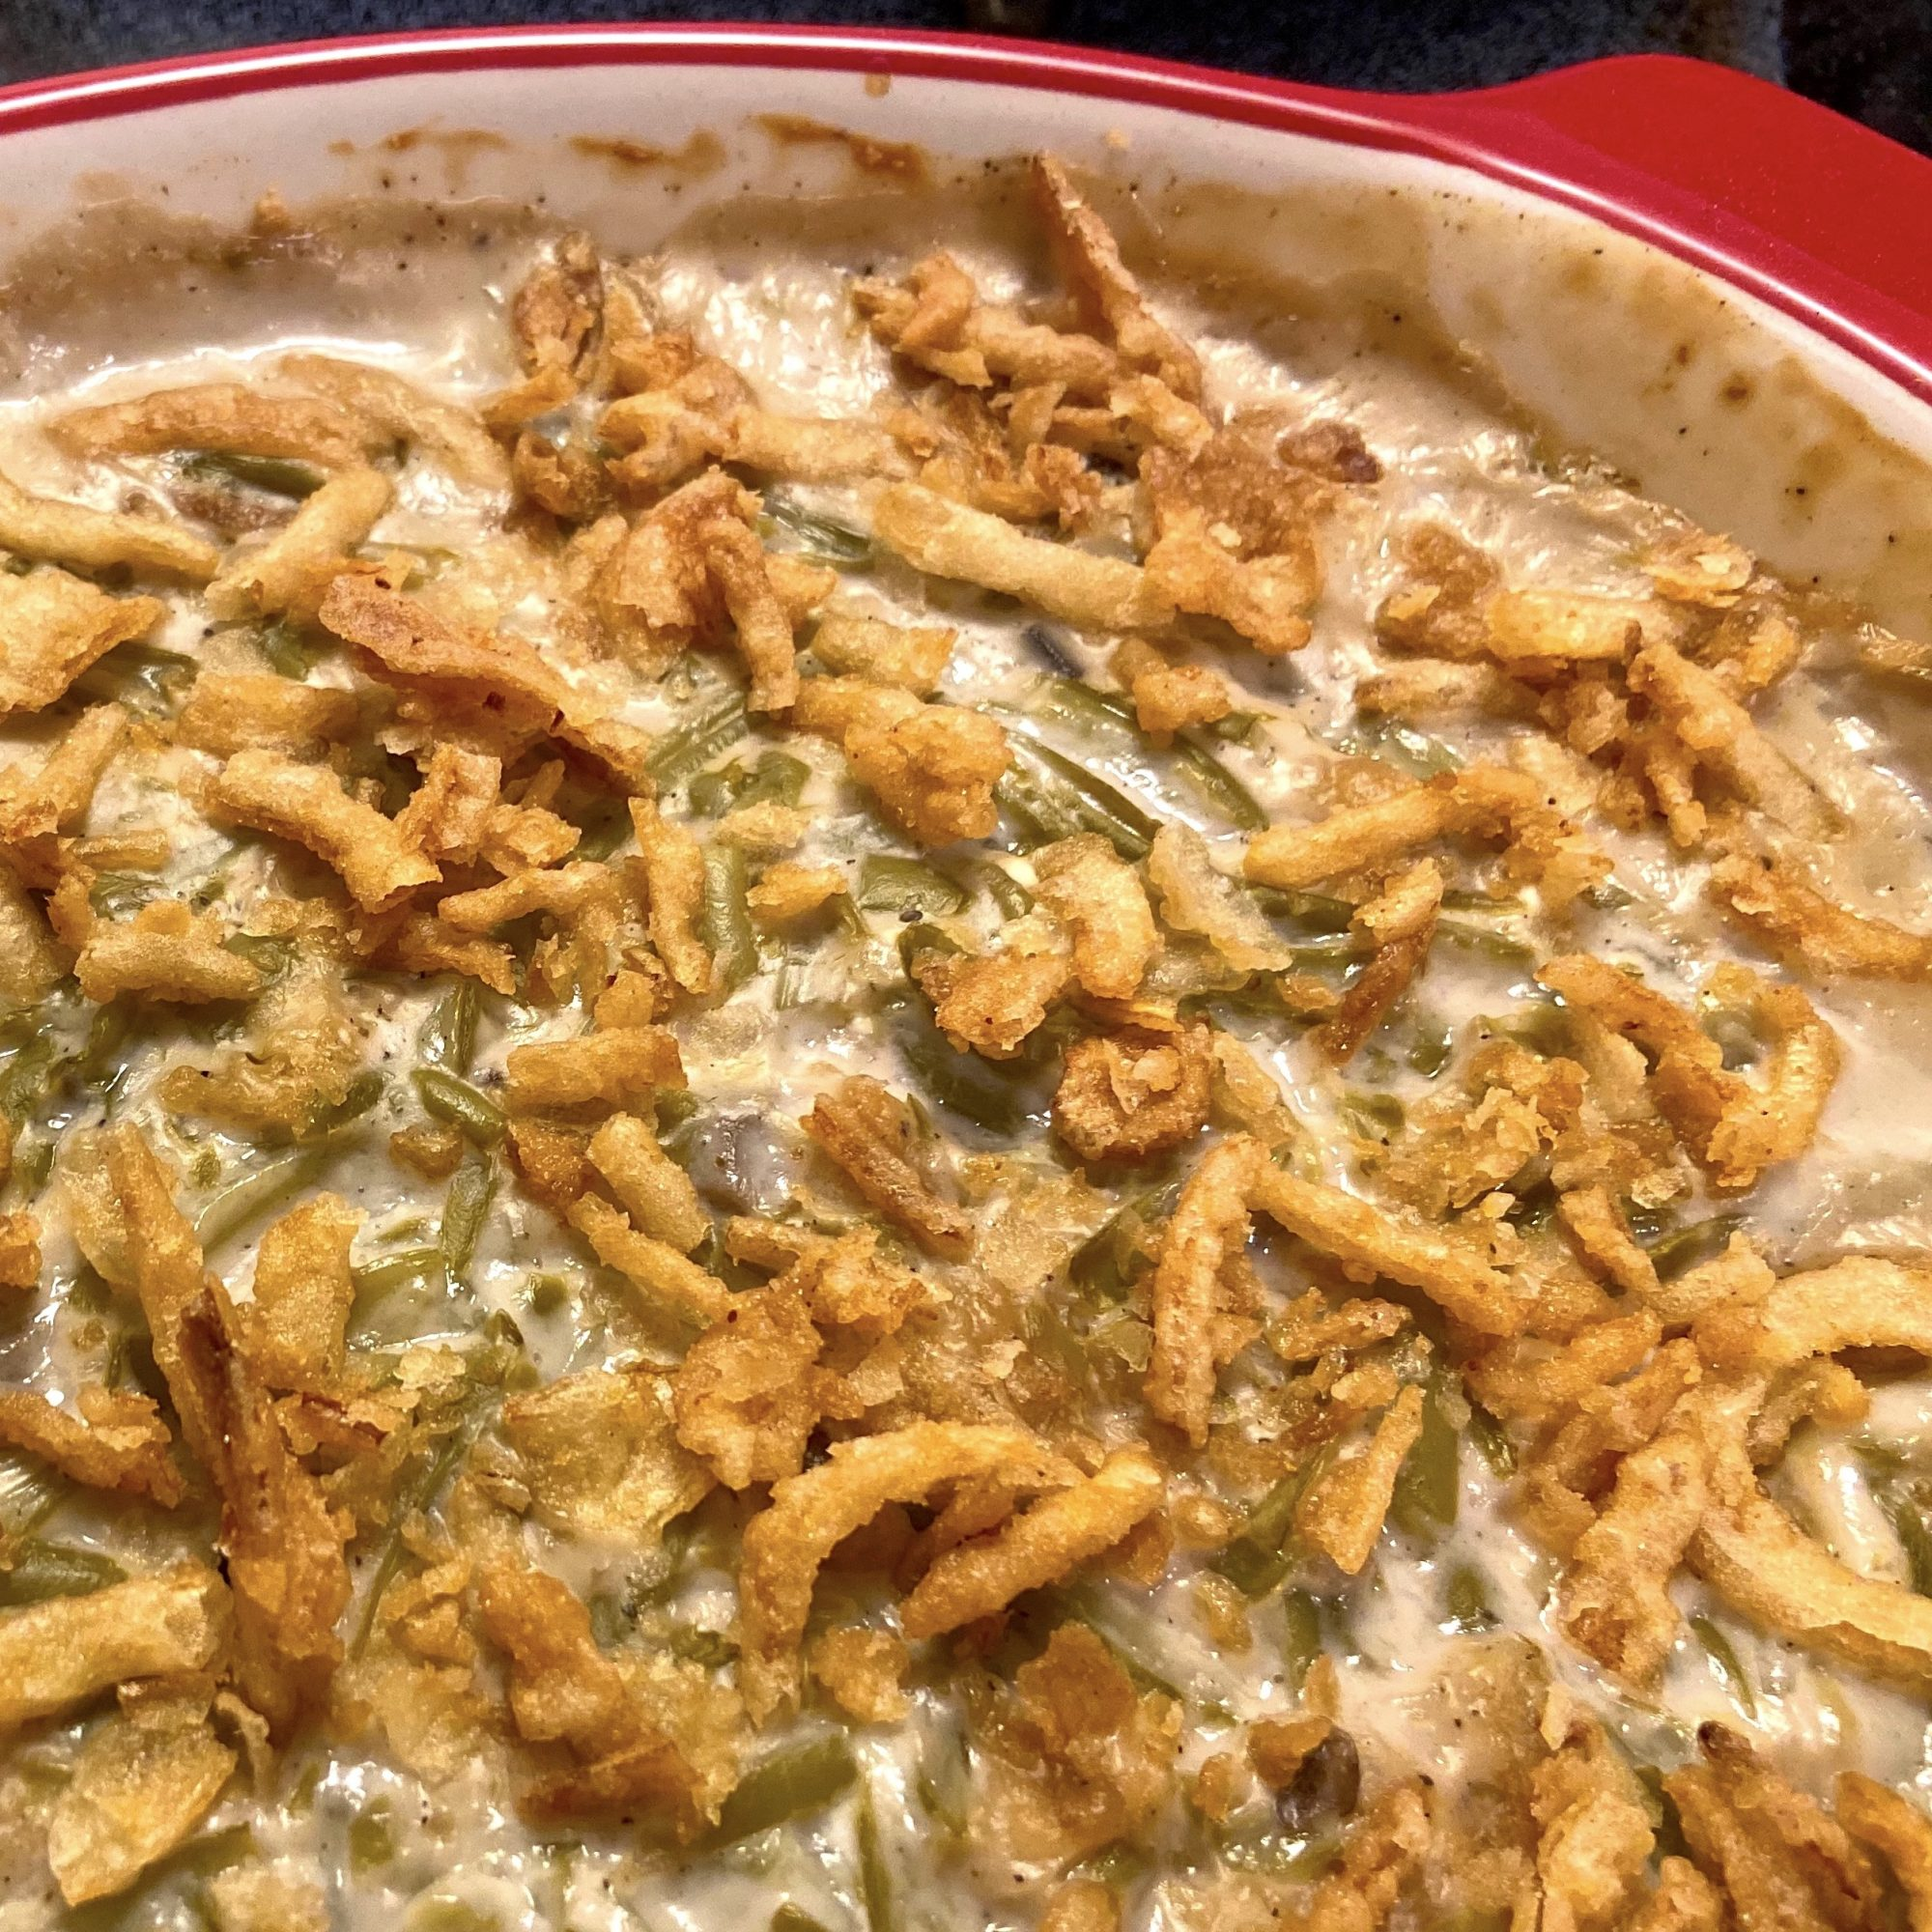 green bean casserole with fried onions in a red casserole dish